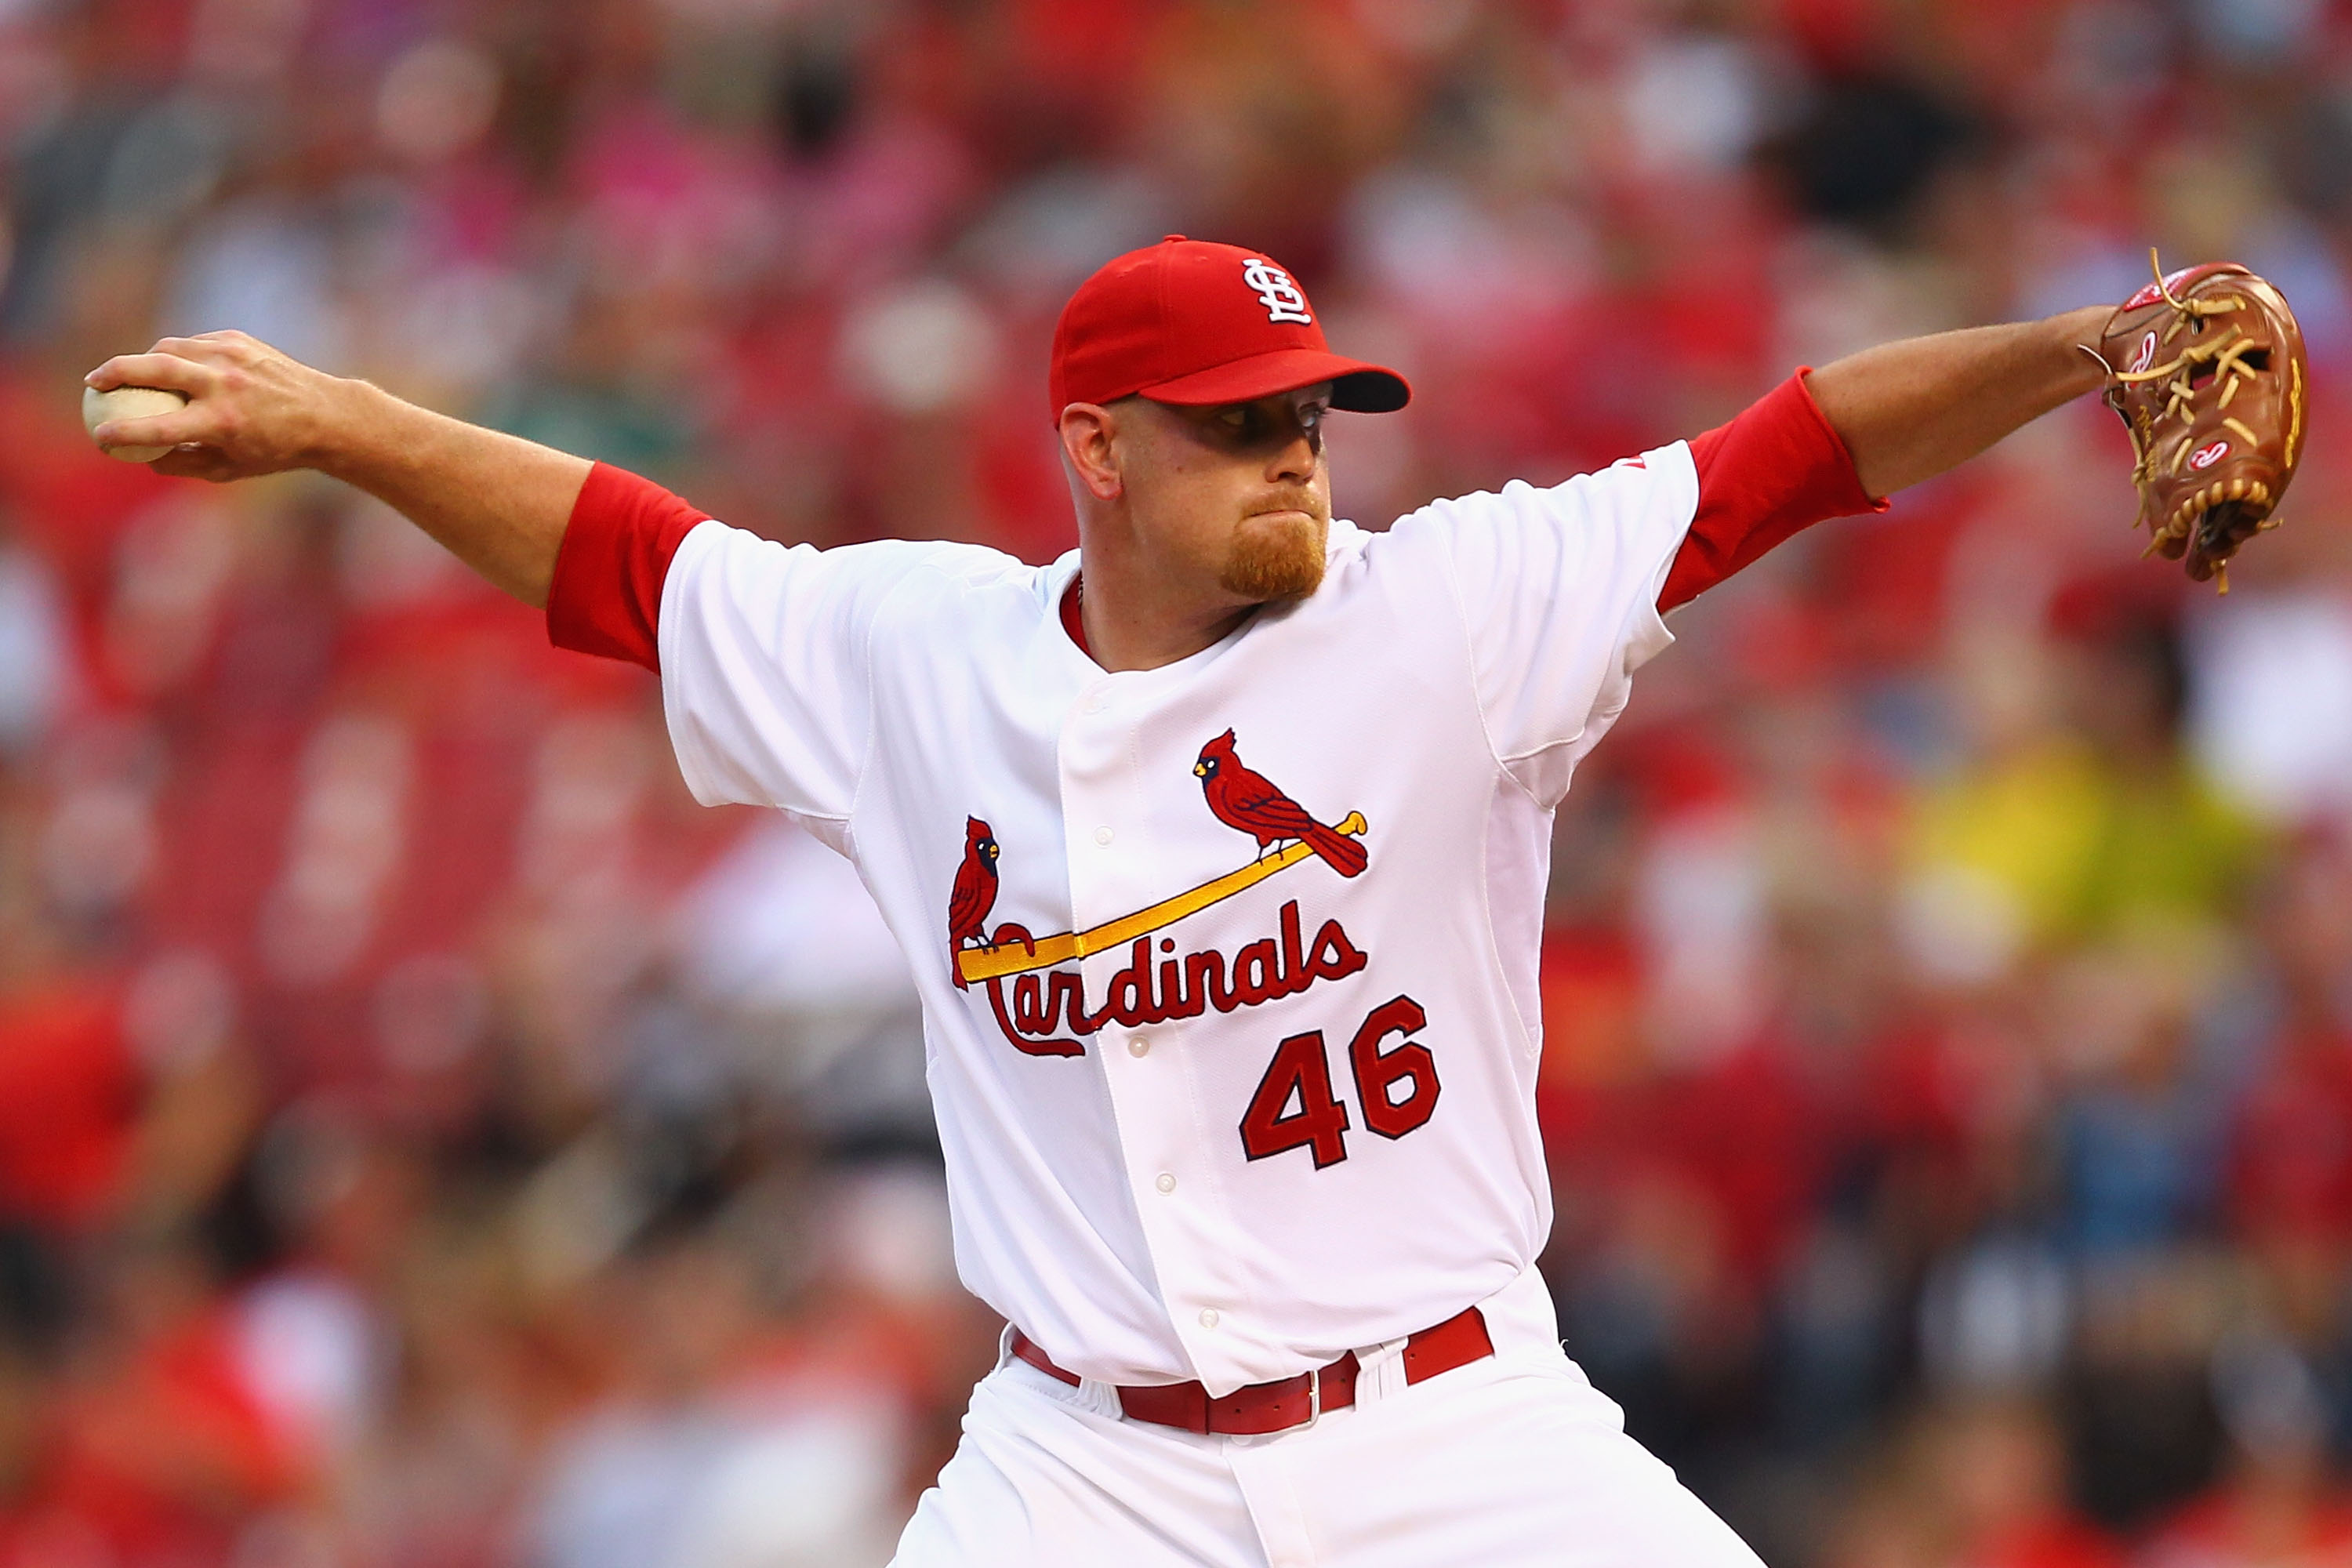 ST. LOUIS - SEPTEMBER 18: Reliever Kyle McClellan #46 of the St. Louis Cardinals pitches against the San Diego Padres at Busch Stadium on September 18, 2010 in St. Louis, Missouri.  The Padres beat the Cardinals 8-4.  (Photo by Dilip Vishwanat/Getty Image